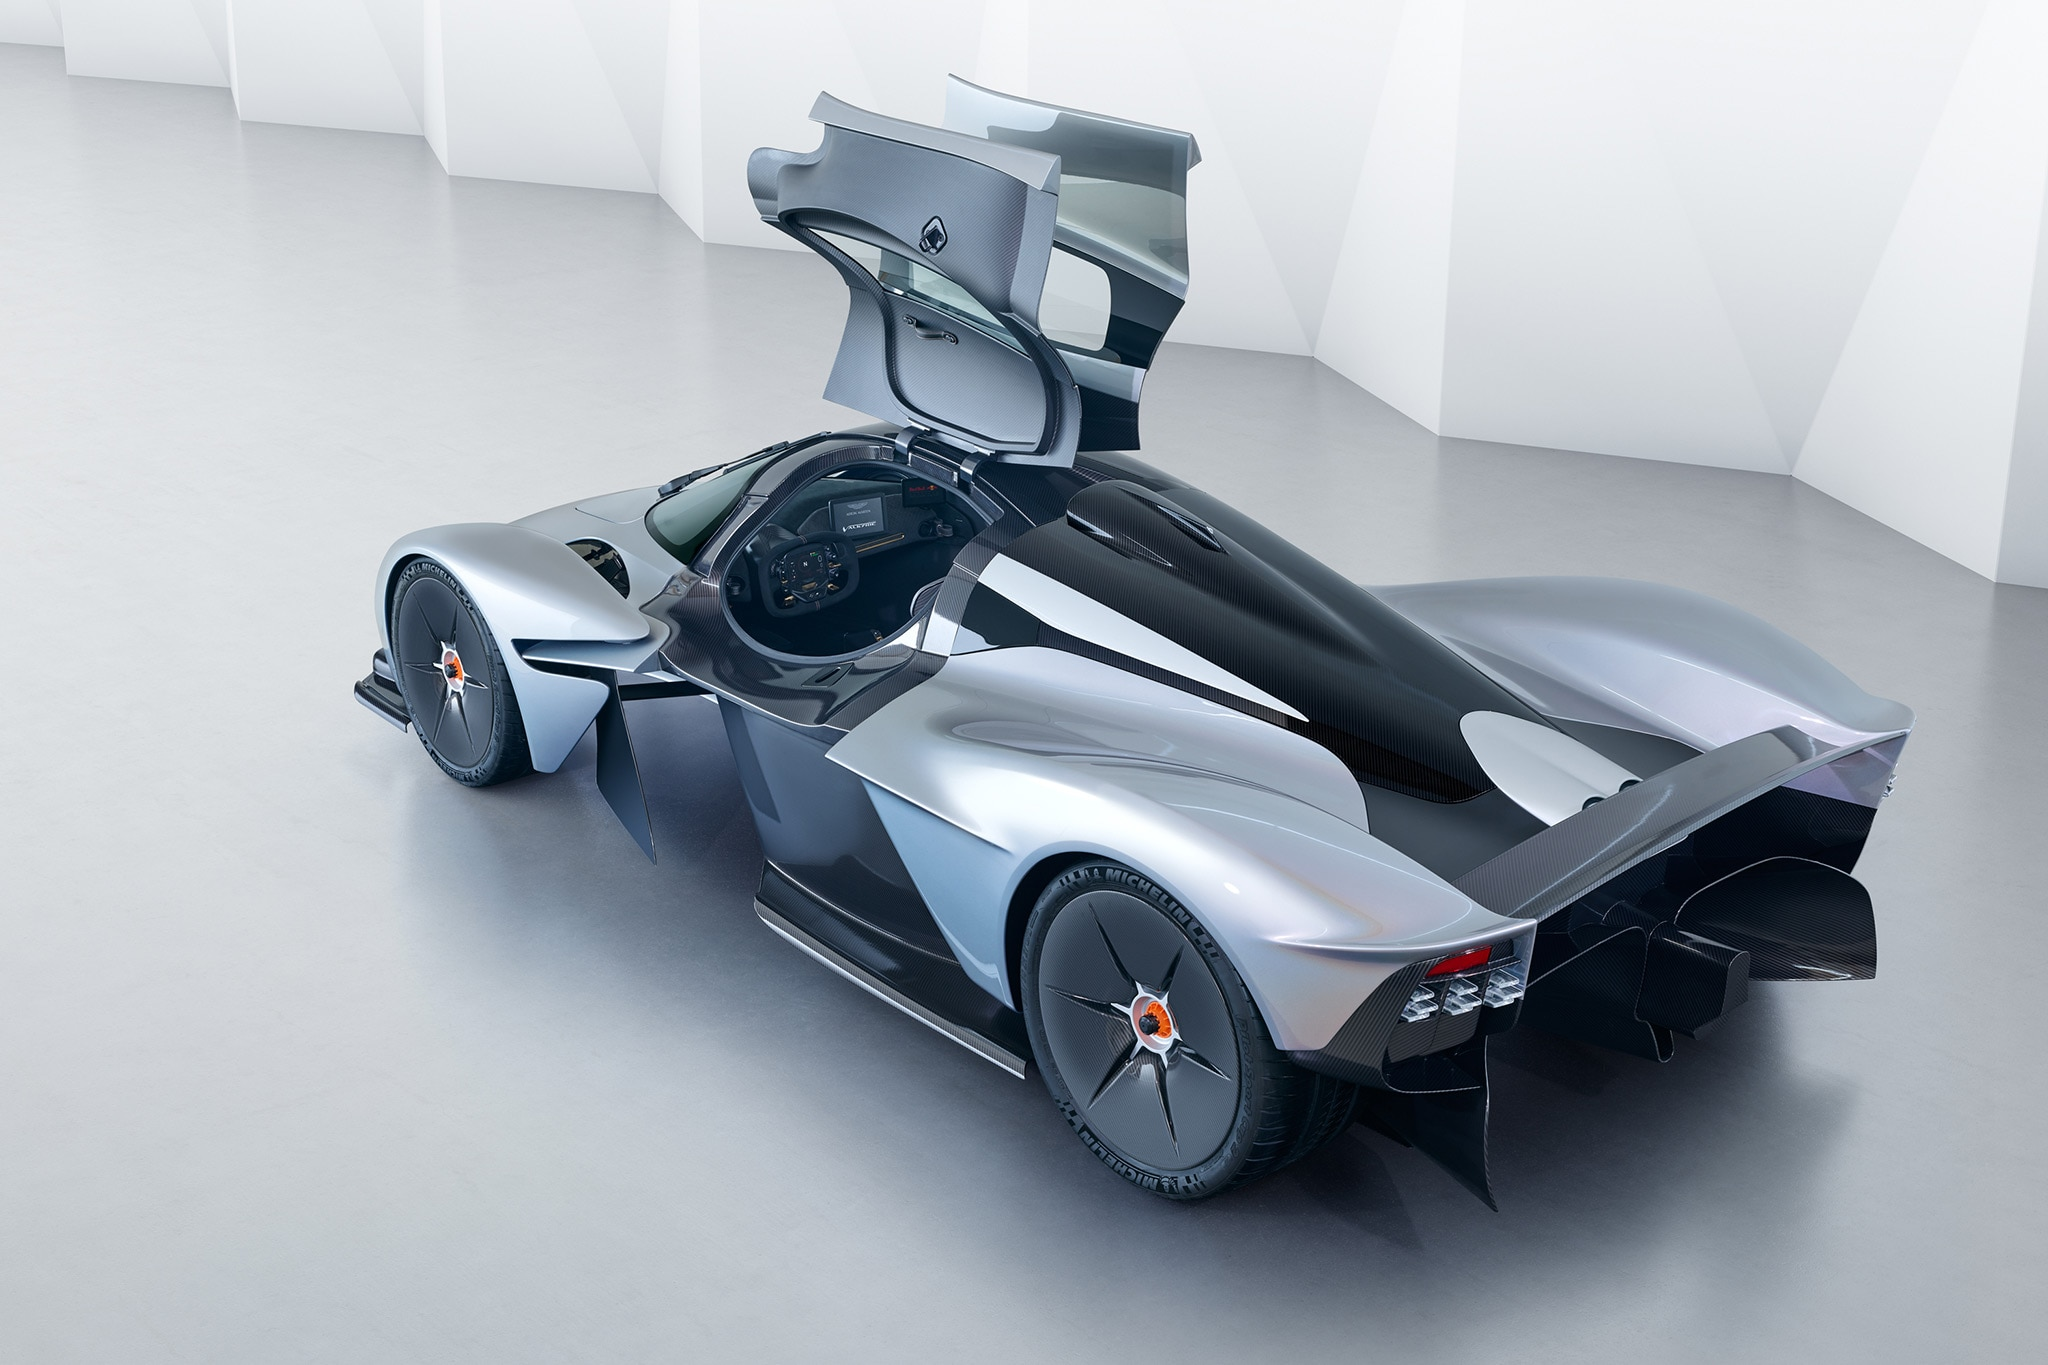 This Is The New Aston Martin Valkyrie